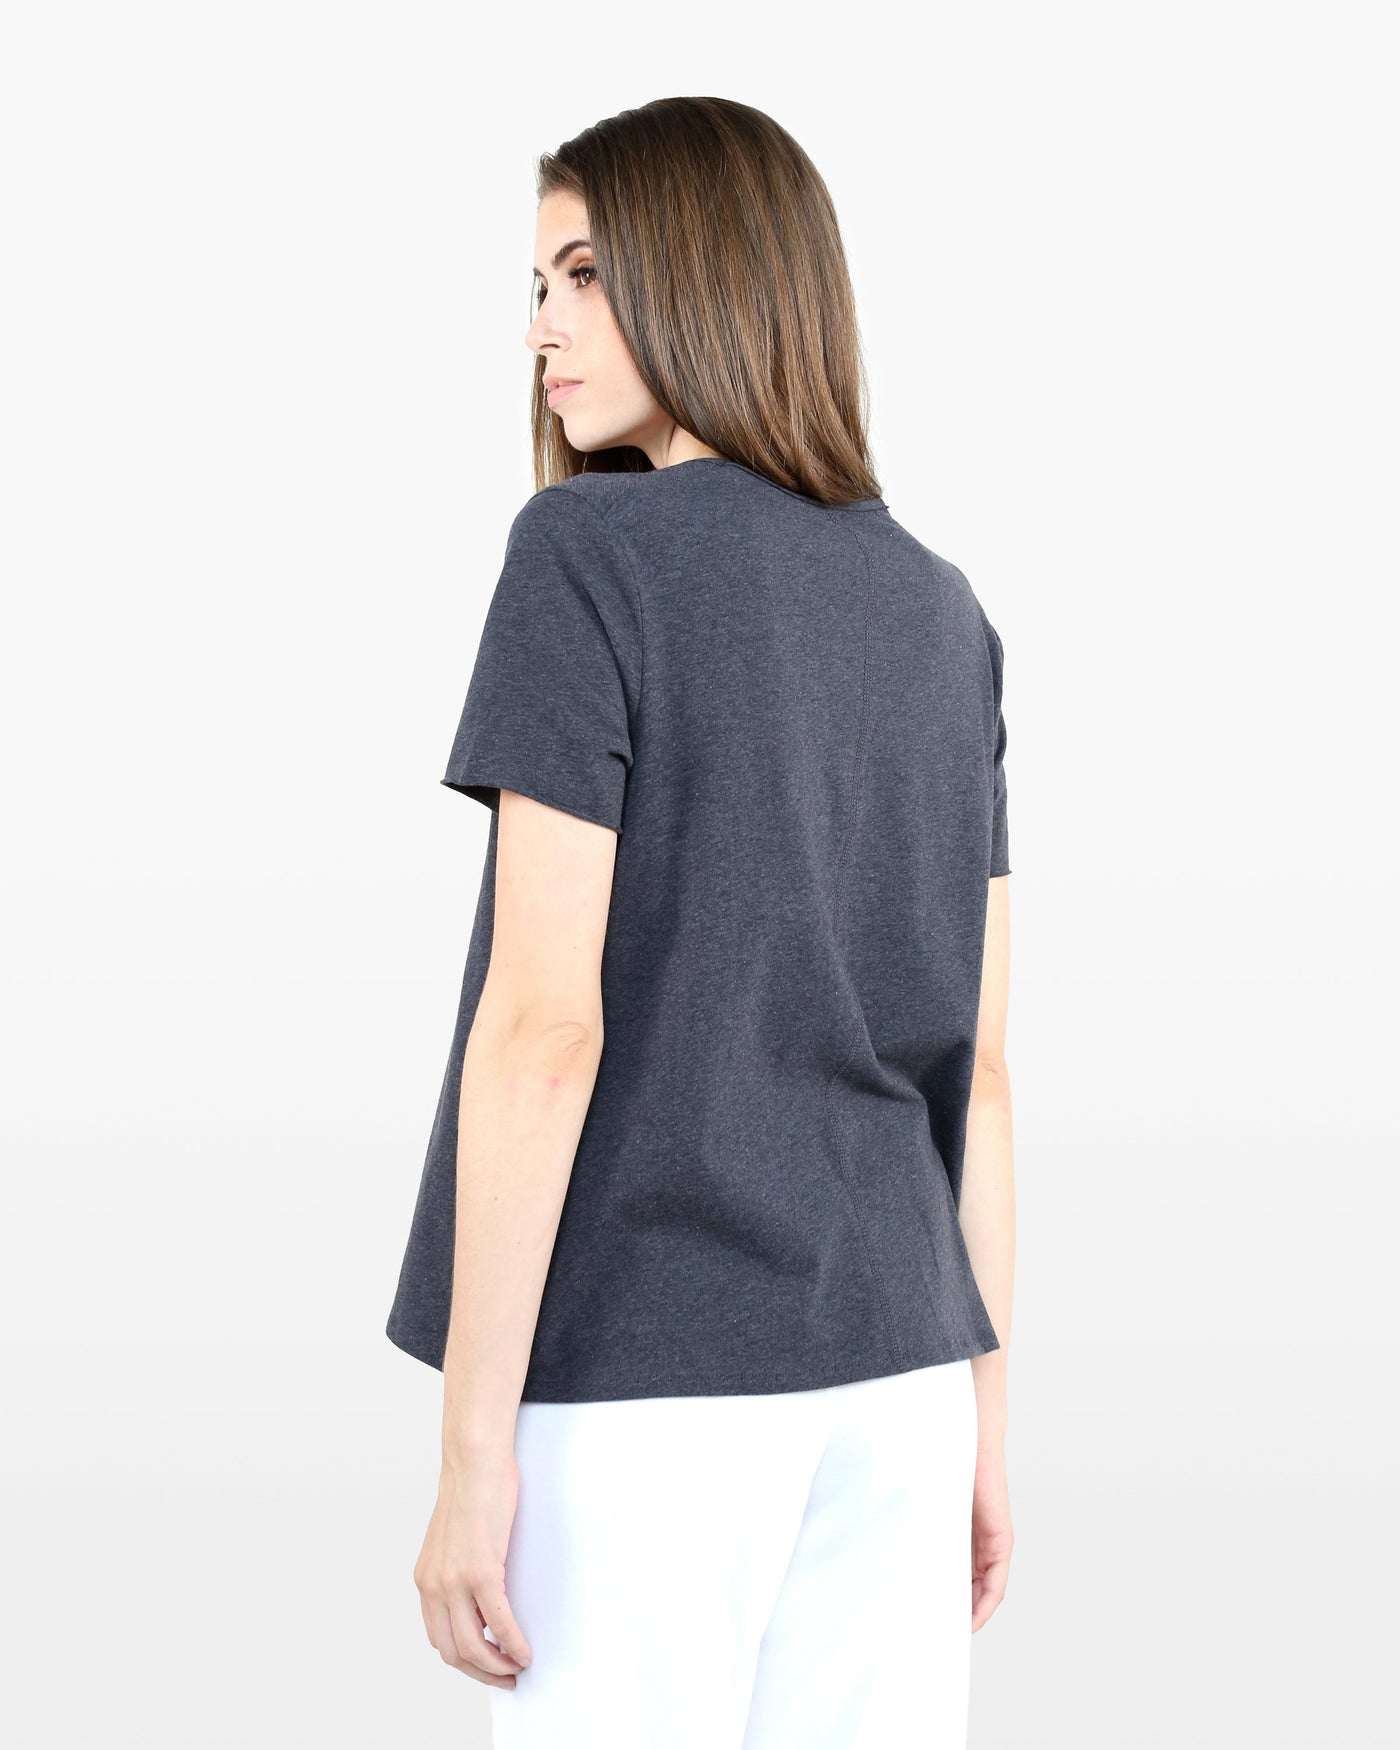 Avery Tee STJ in charcoal